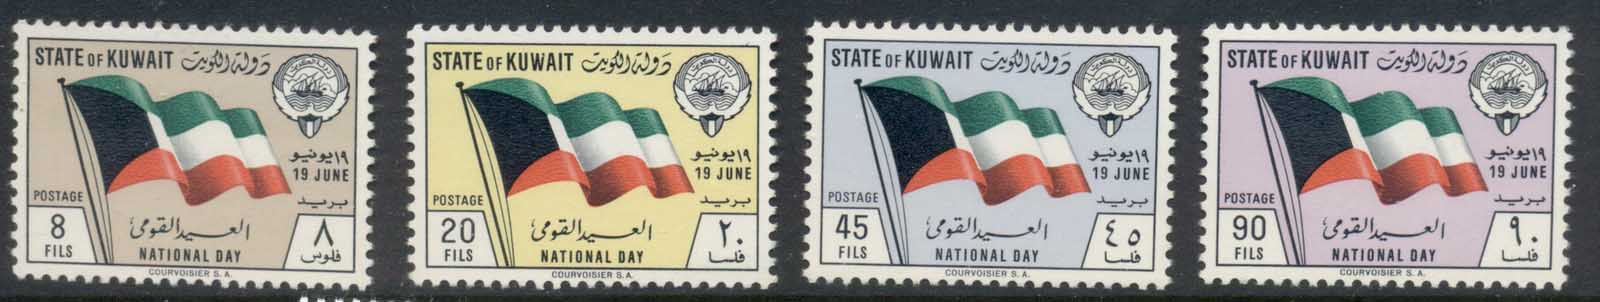 Kuwait 1962 National Day MUH